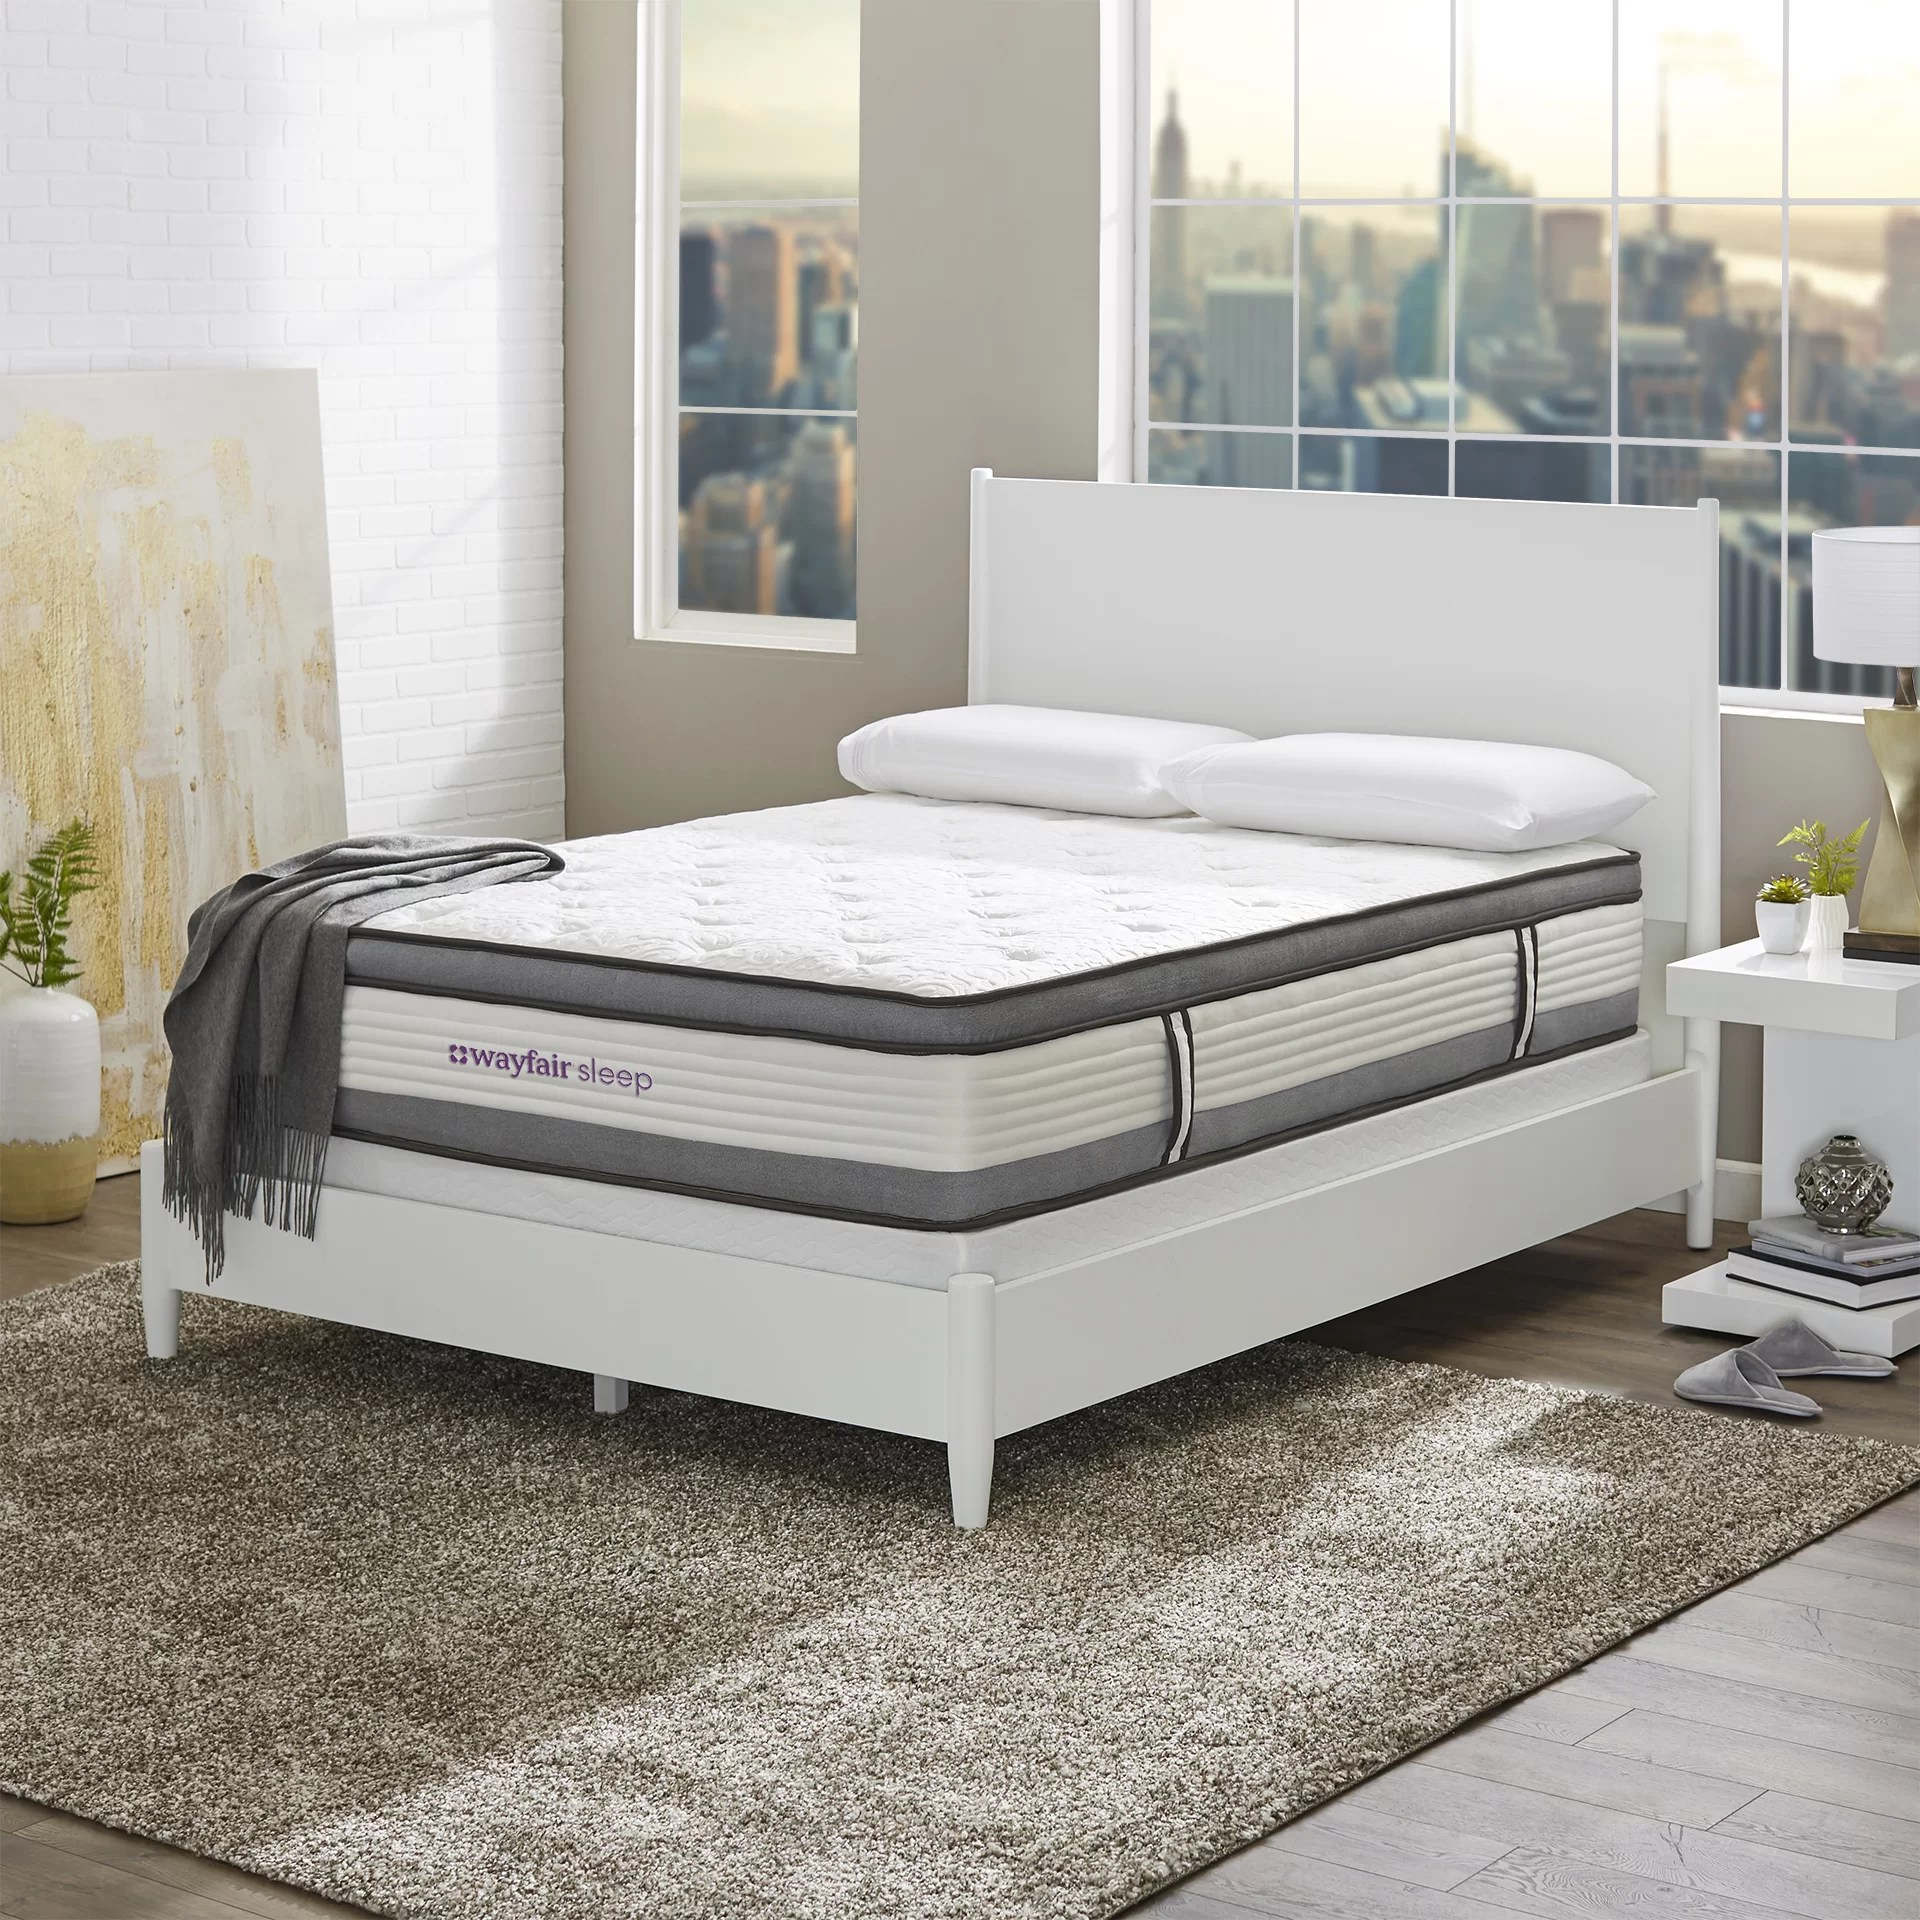 Bedroom Mattress Wayfair Sleep 12